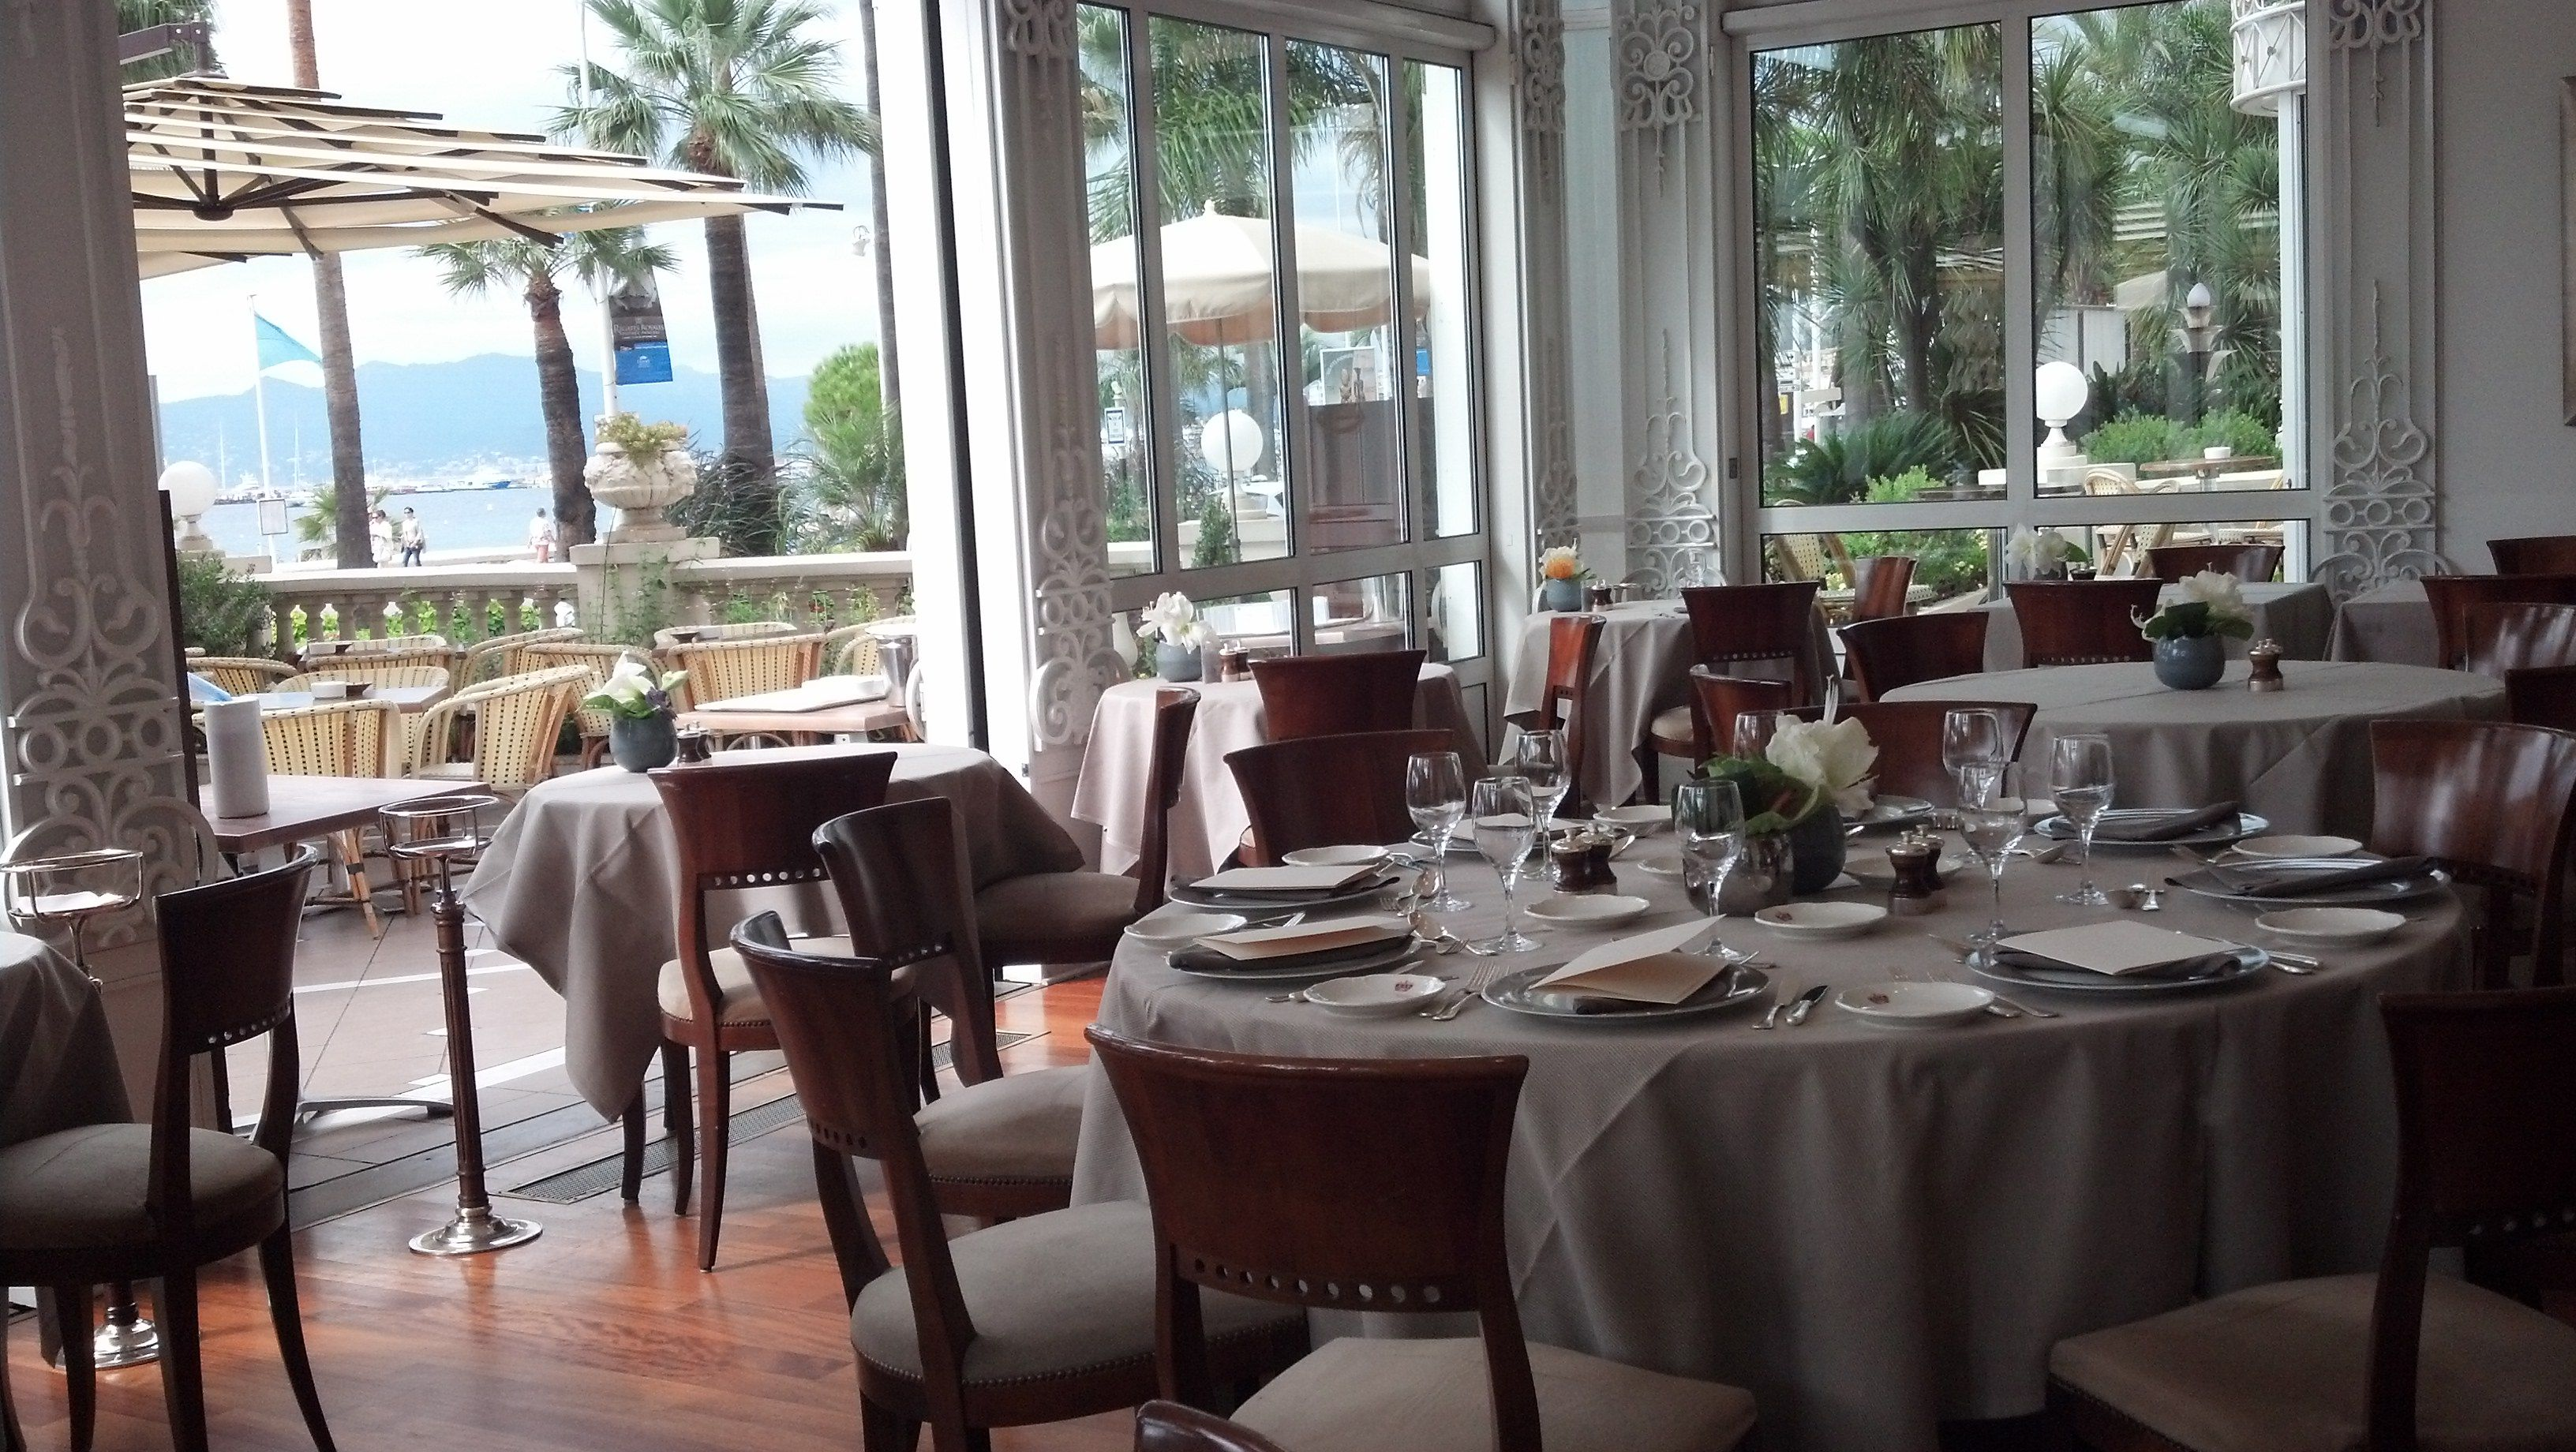 1 Hotel 2 Hotels 3 Hotels A Cannes Photo Restaurant Carlton Cannes 460x330 Carlton Cannes Cannes Et Photo Restaurant